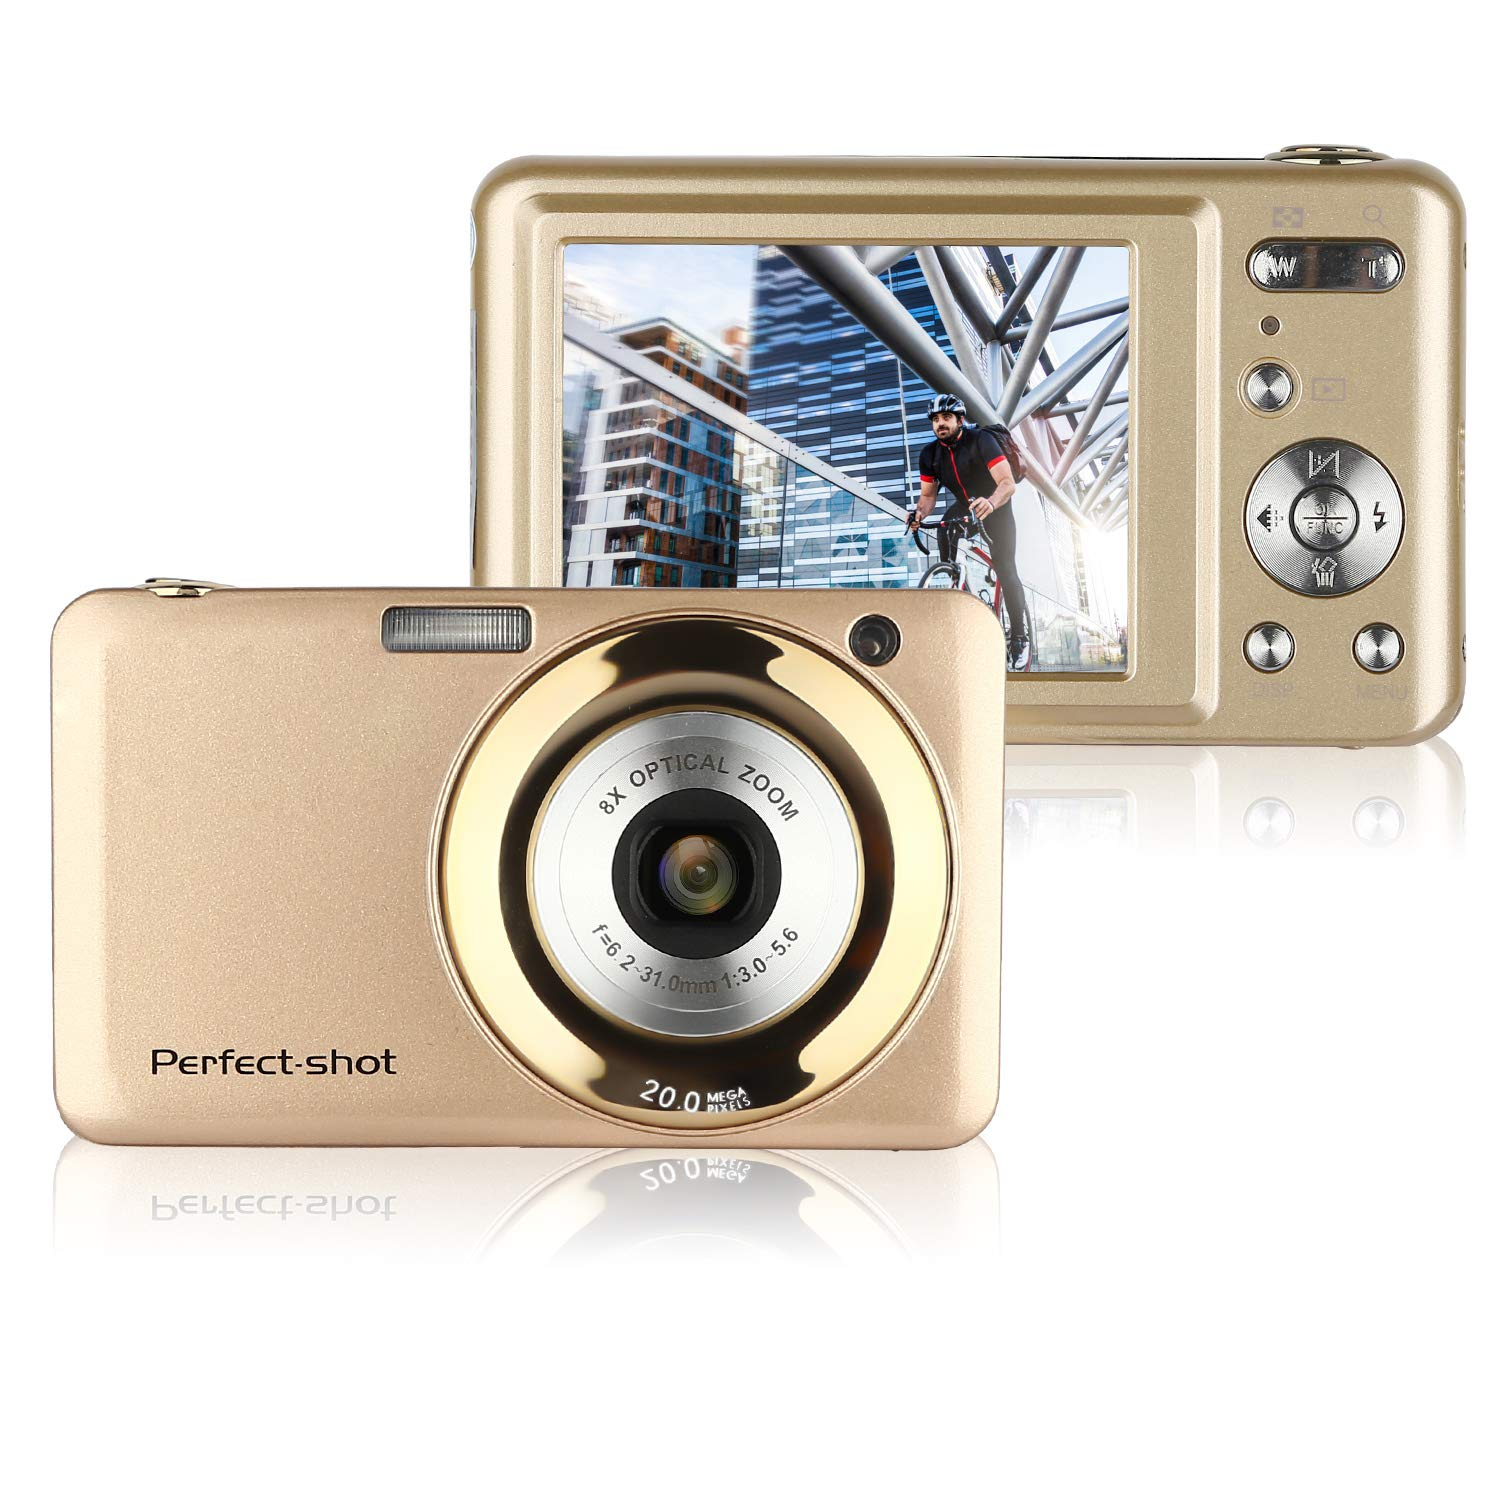 GordVESJB008 2.7 Inch TFT 5X Optical Zoom 15MP 1280x720 HD Anti-shake Smile Capture Digital Video Camera--Gold by GordVE